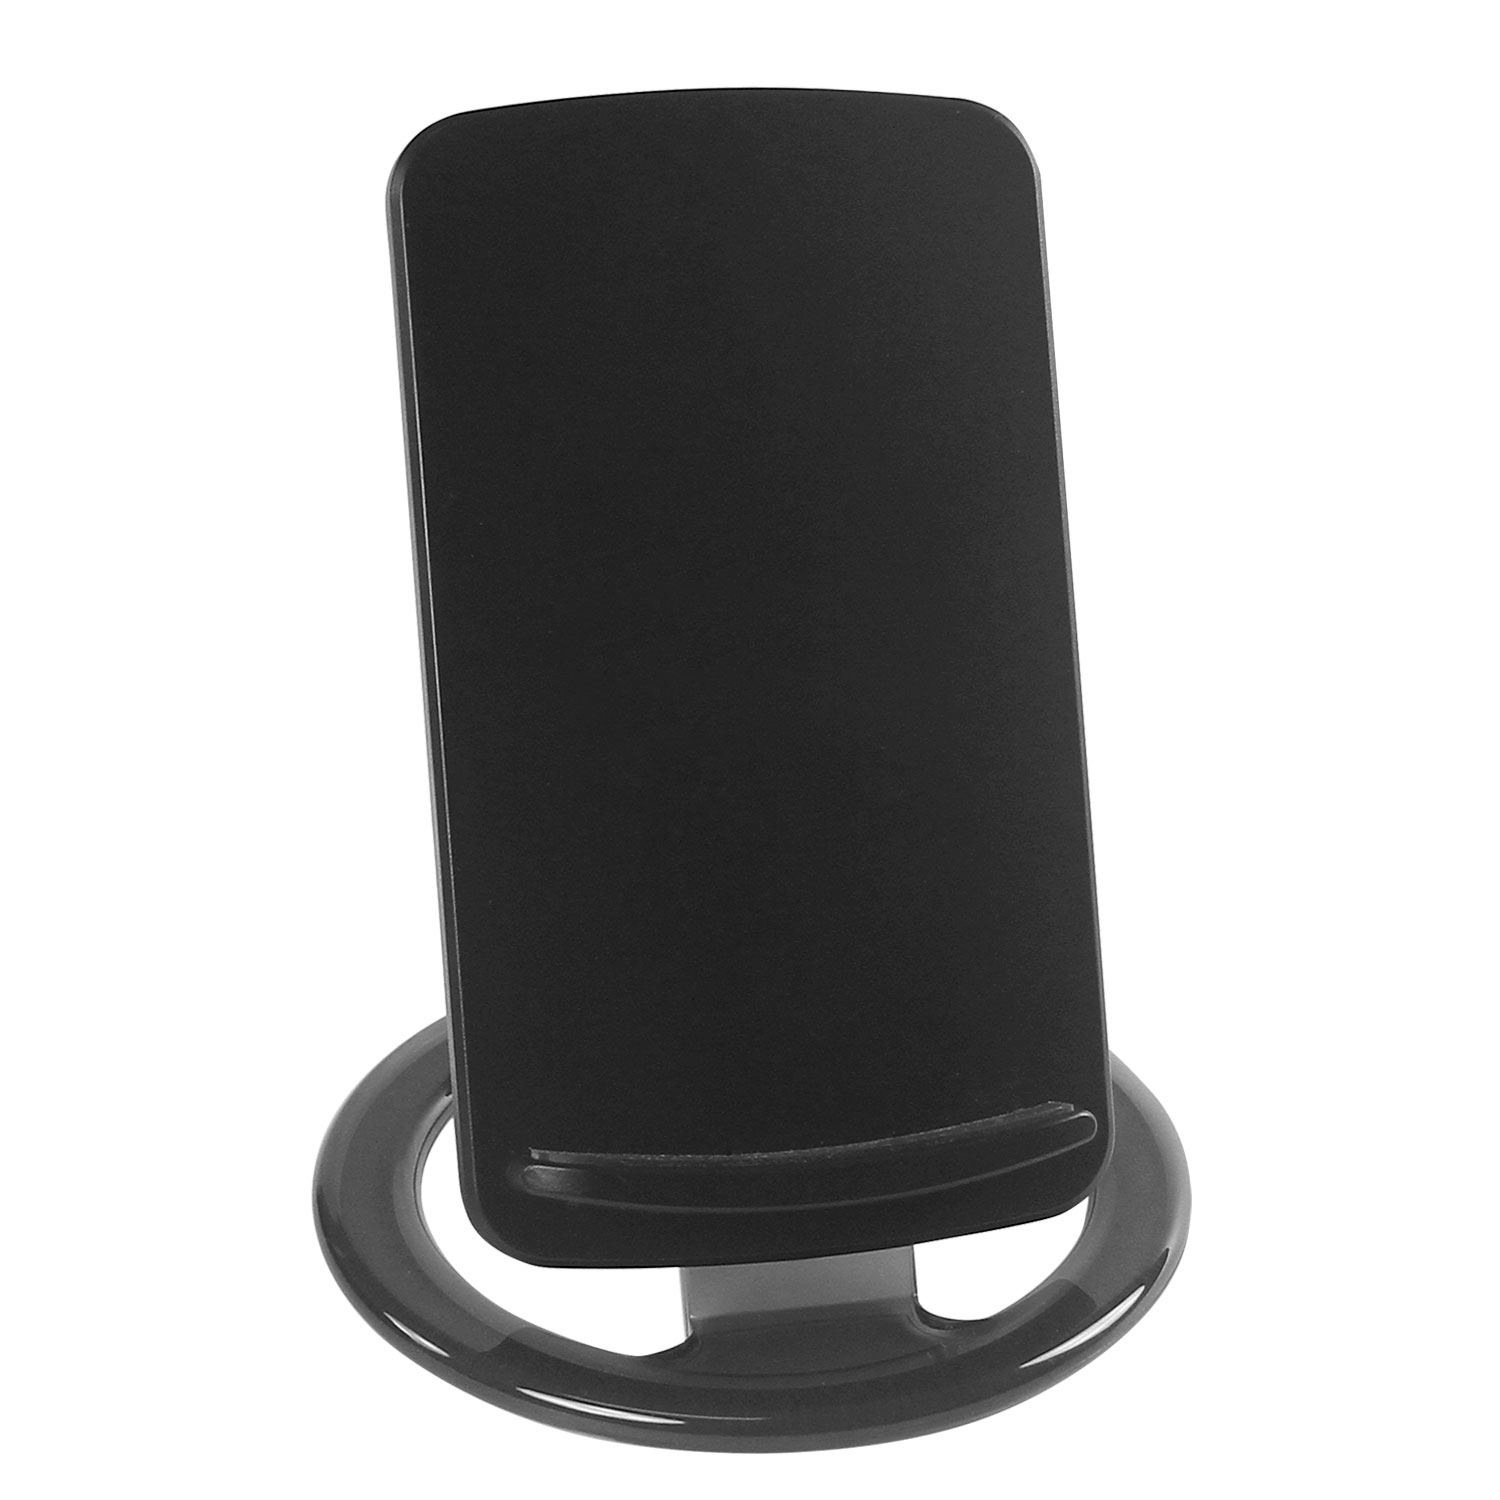 Nokia Lumia 928 Wireless Desktop Charger Black